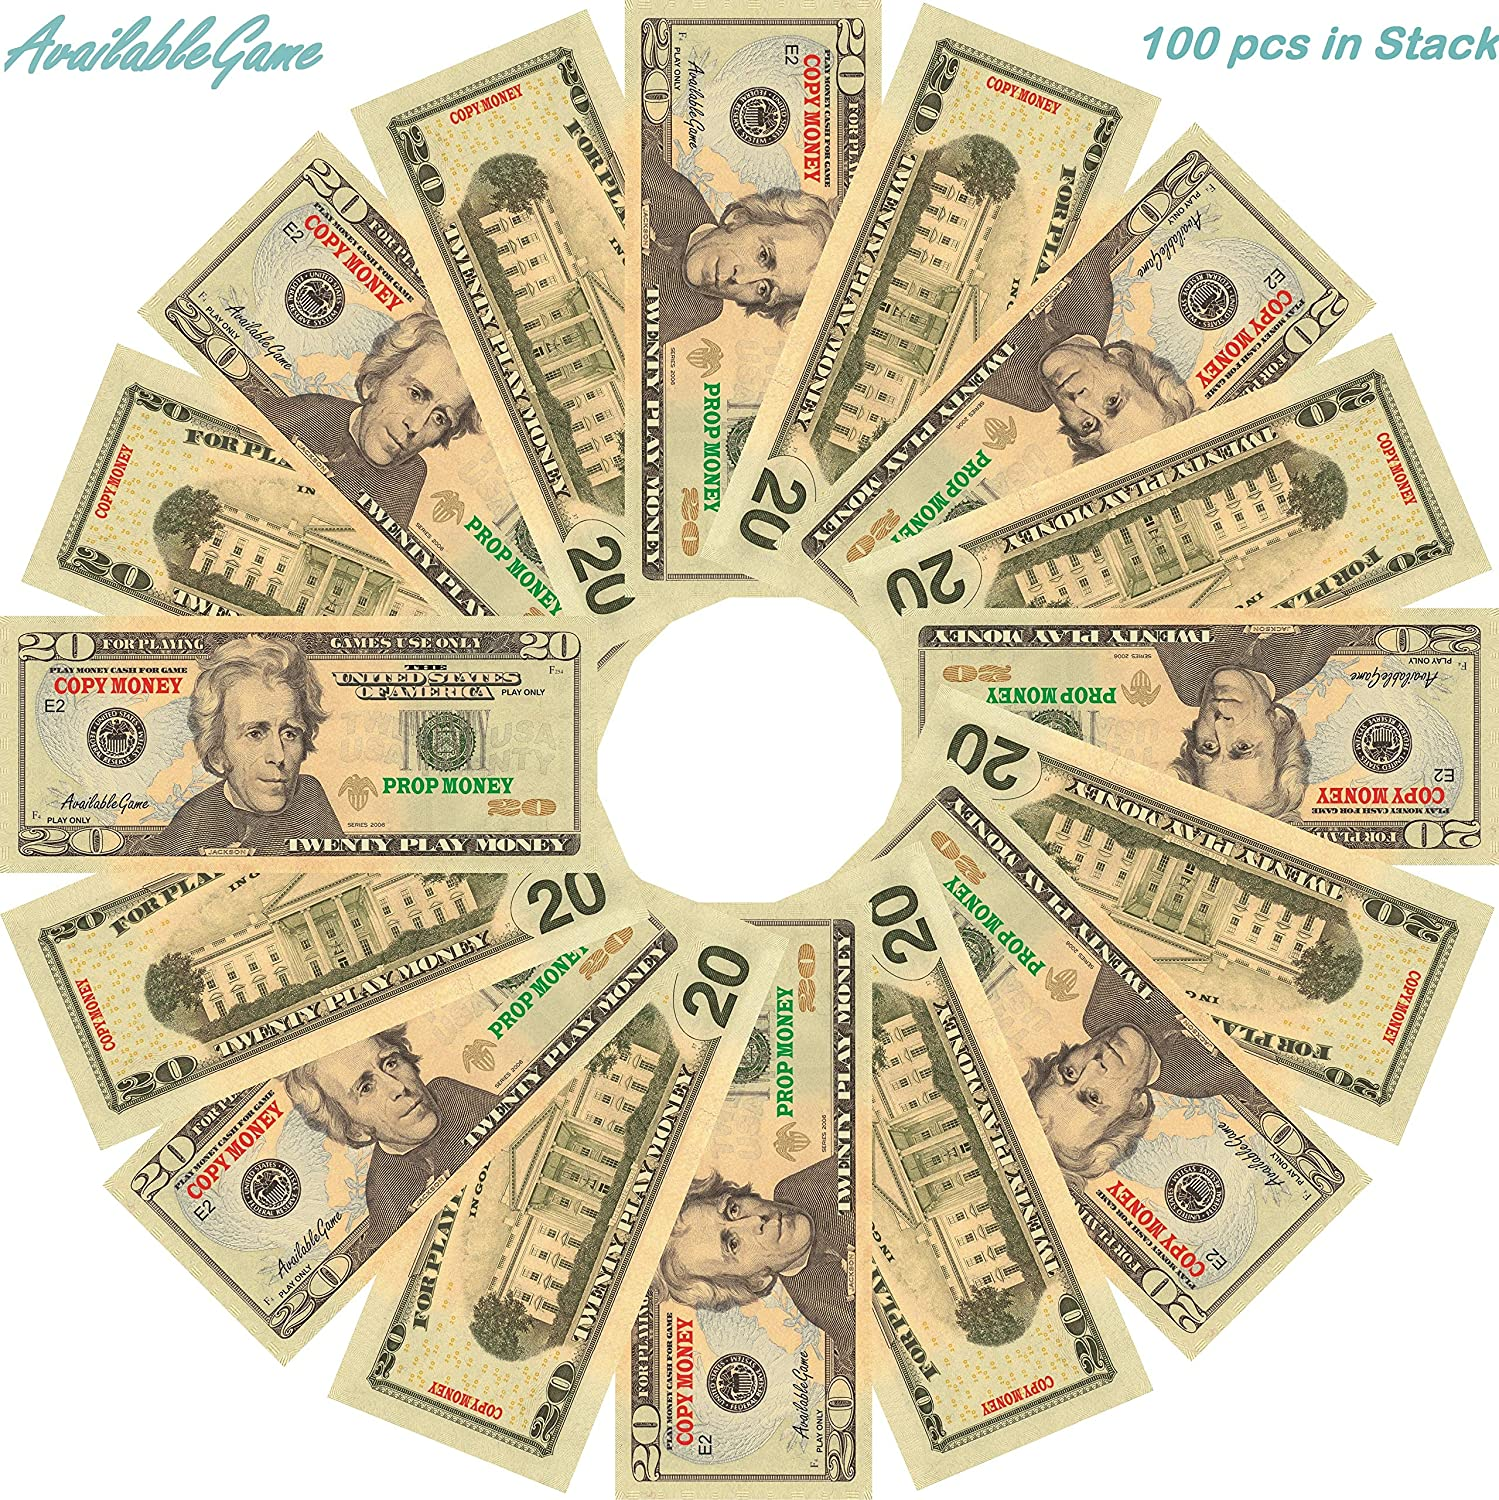 AvailableGame 20 Dollars Play Money for Games Monopoly Prop Paper Copy Money Double-Sided Printing 100 pcs $2,000 Educational Twenty Dollar Bills Copy Money Stack for Kids